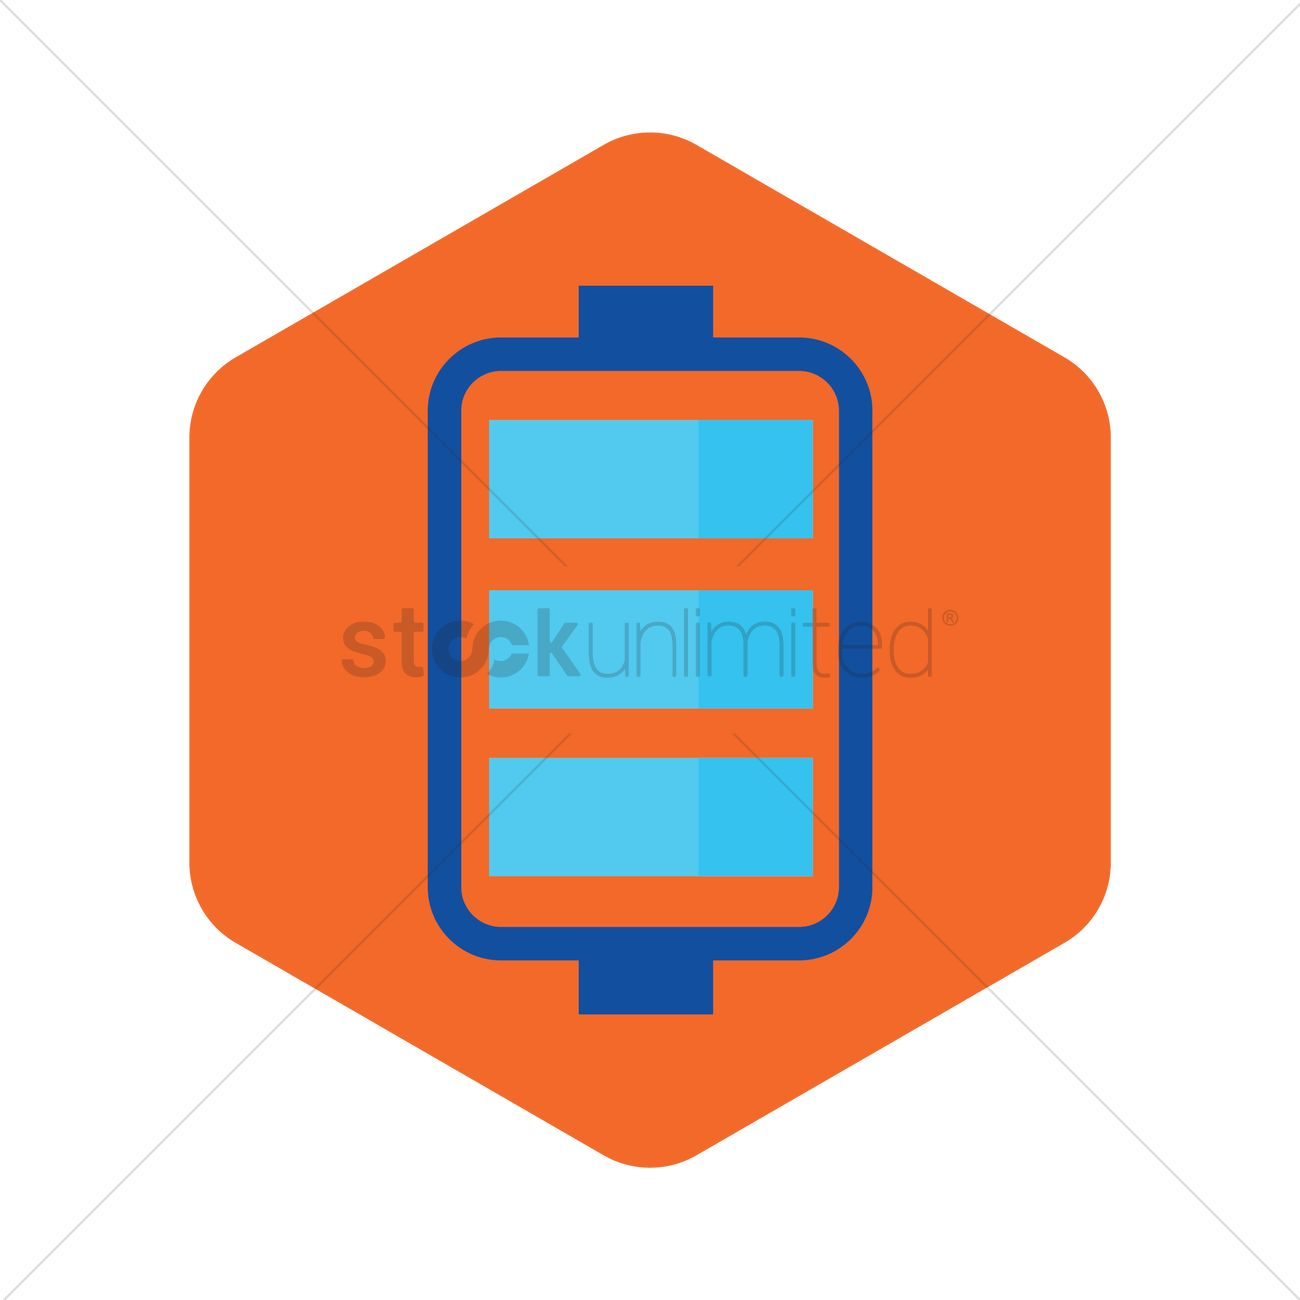 Free Battery Level Indicator Vector Image 1247695 Stockunlimited Graphic